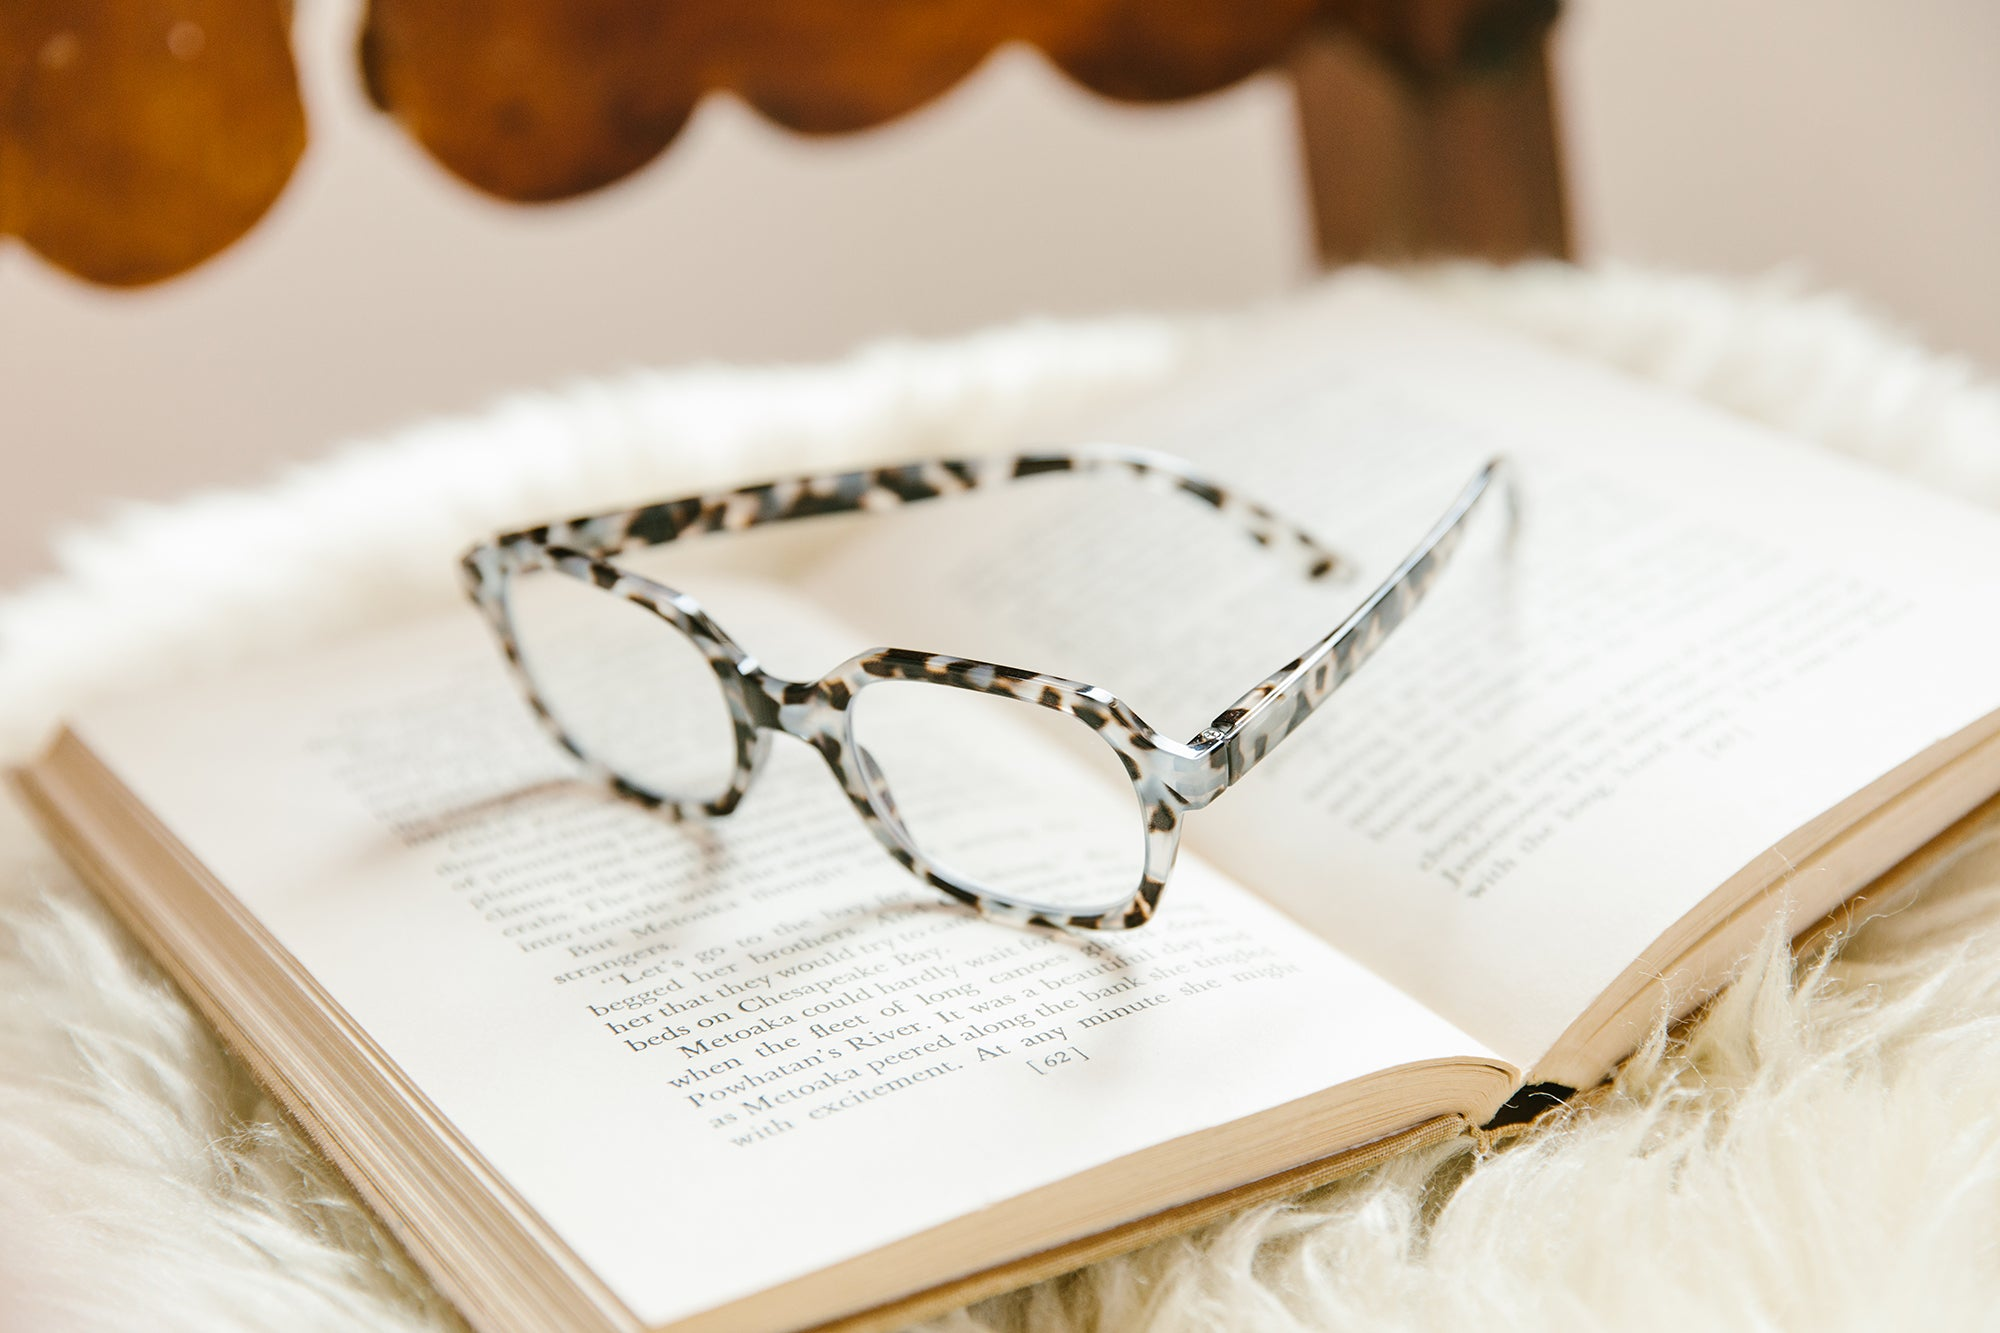 Peepers gray tortoise reading glasses sitting on an open book